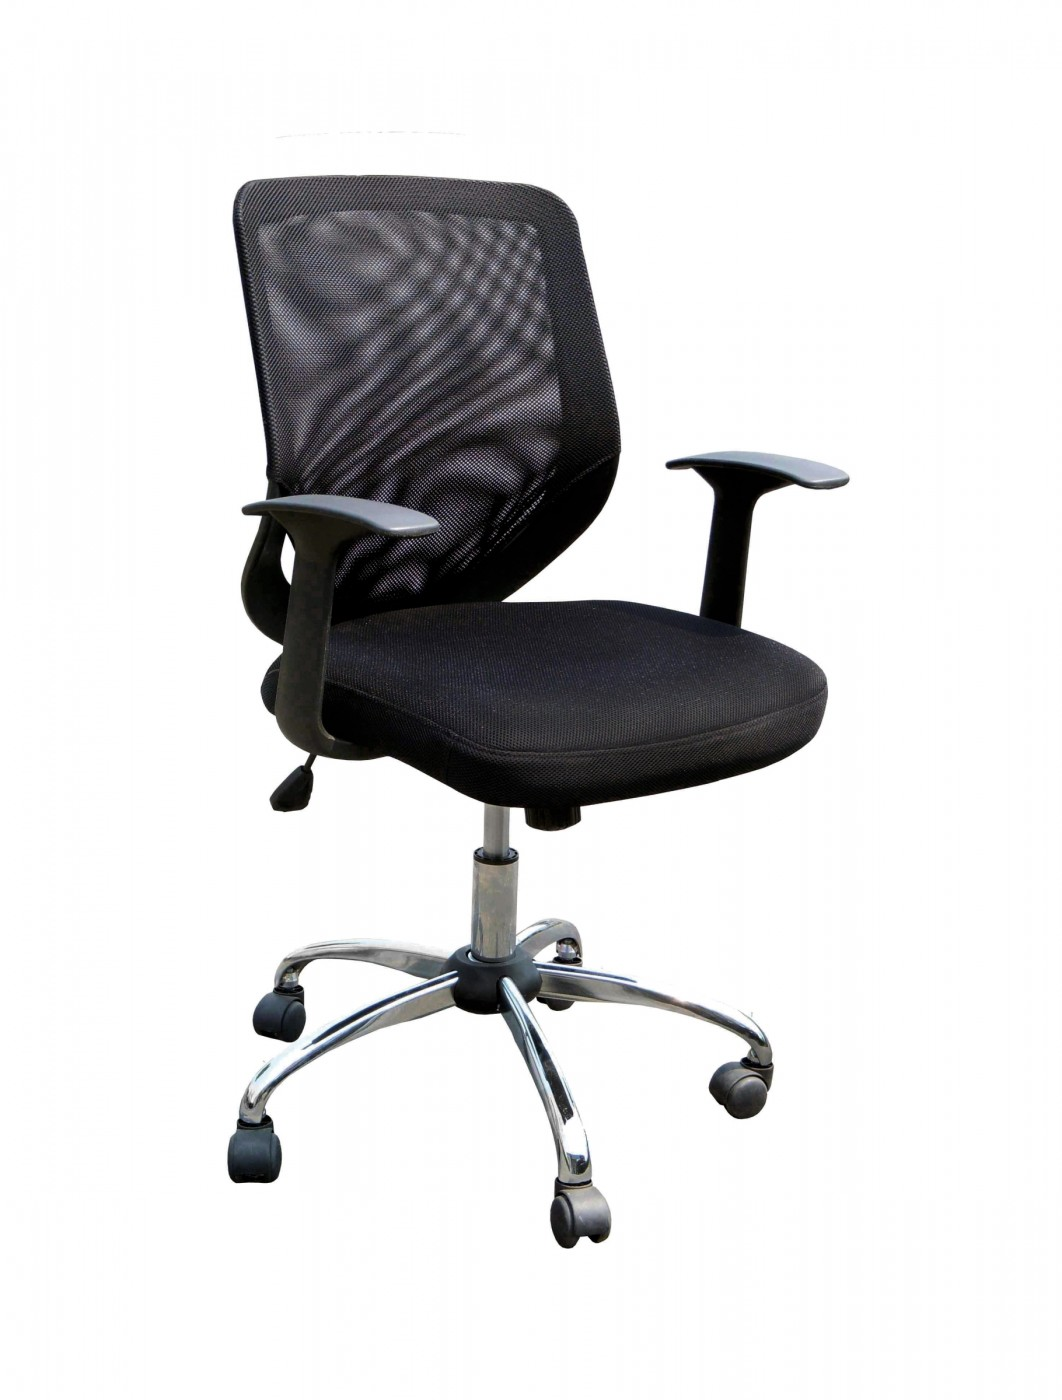 Ranger Operator Armchair 95atg Mbk 121 Office Furniture